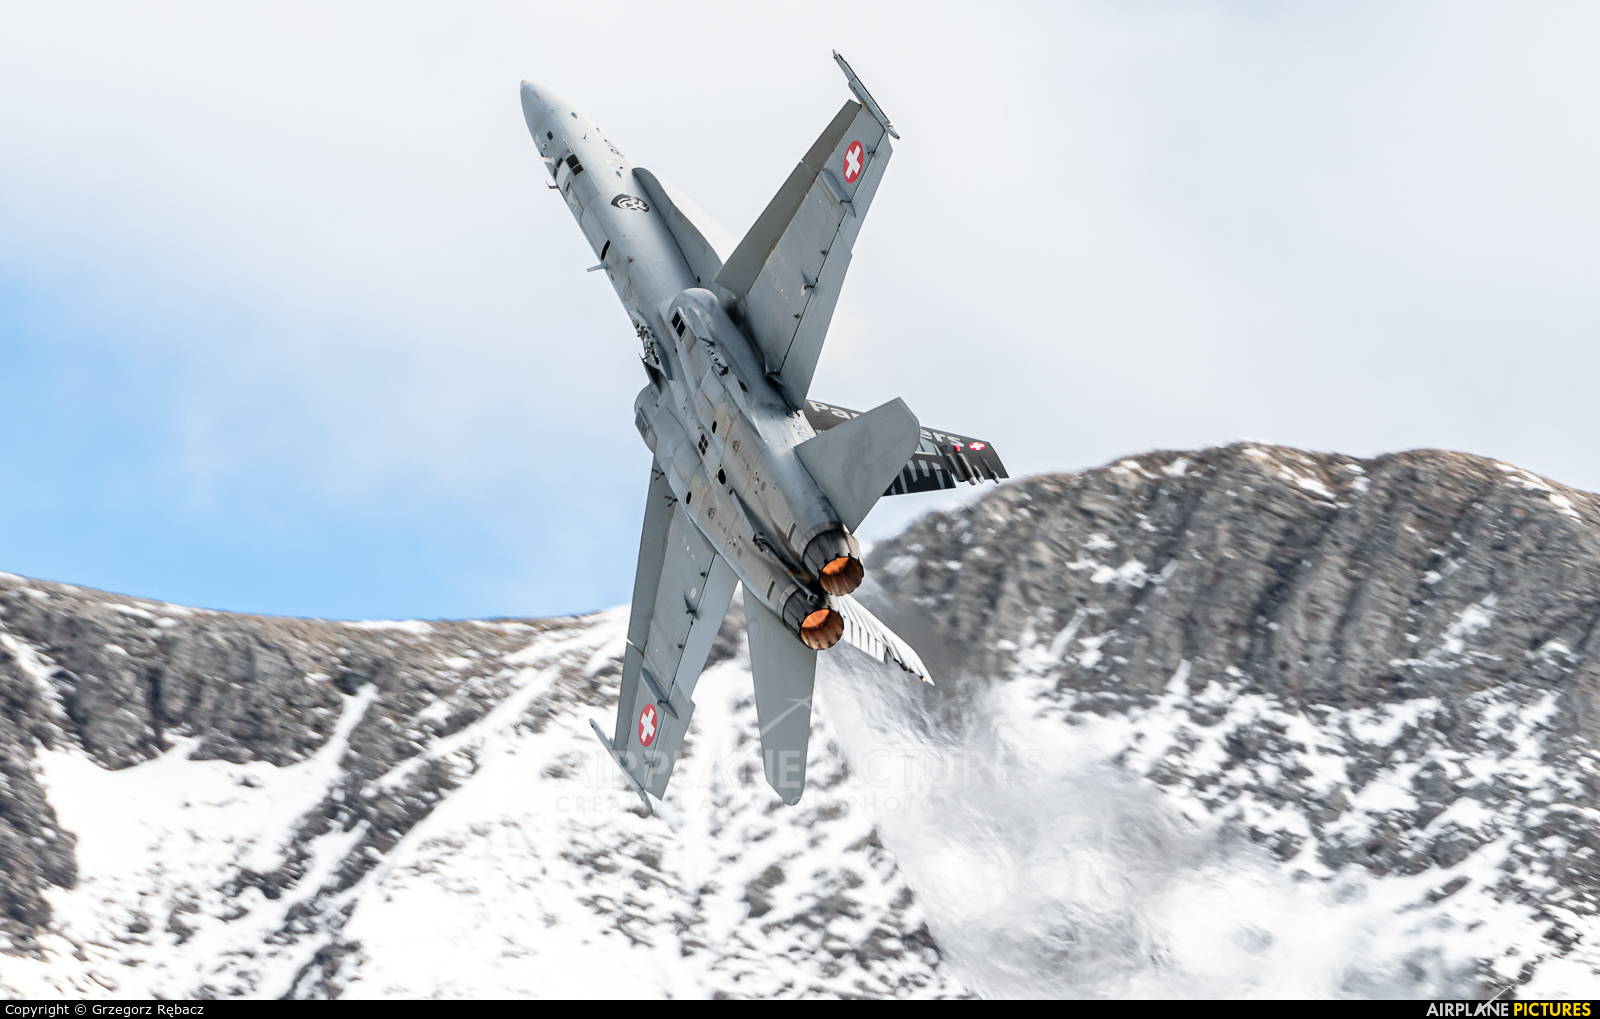 Switzerland - Air Force J-5018 aircraft at Axalp - Ebenfluh Range